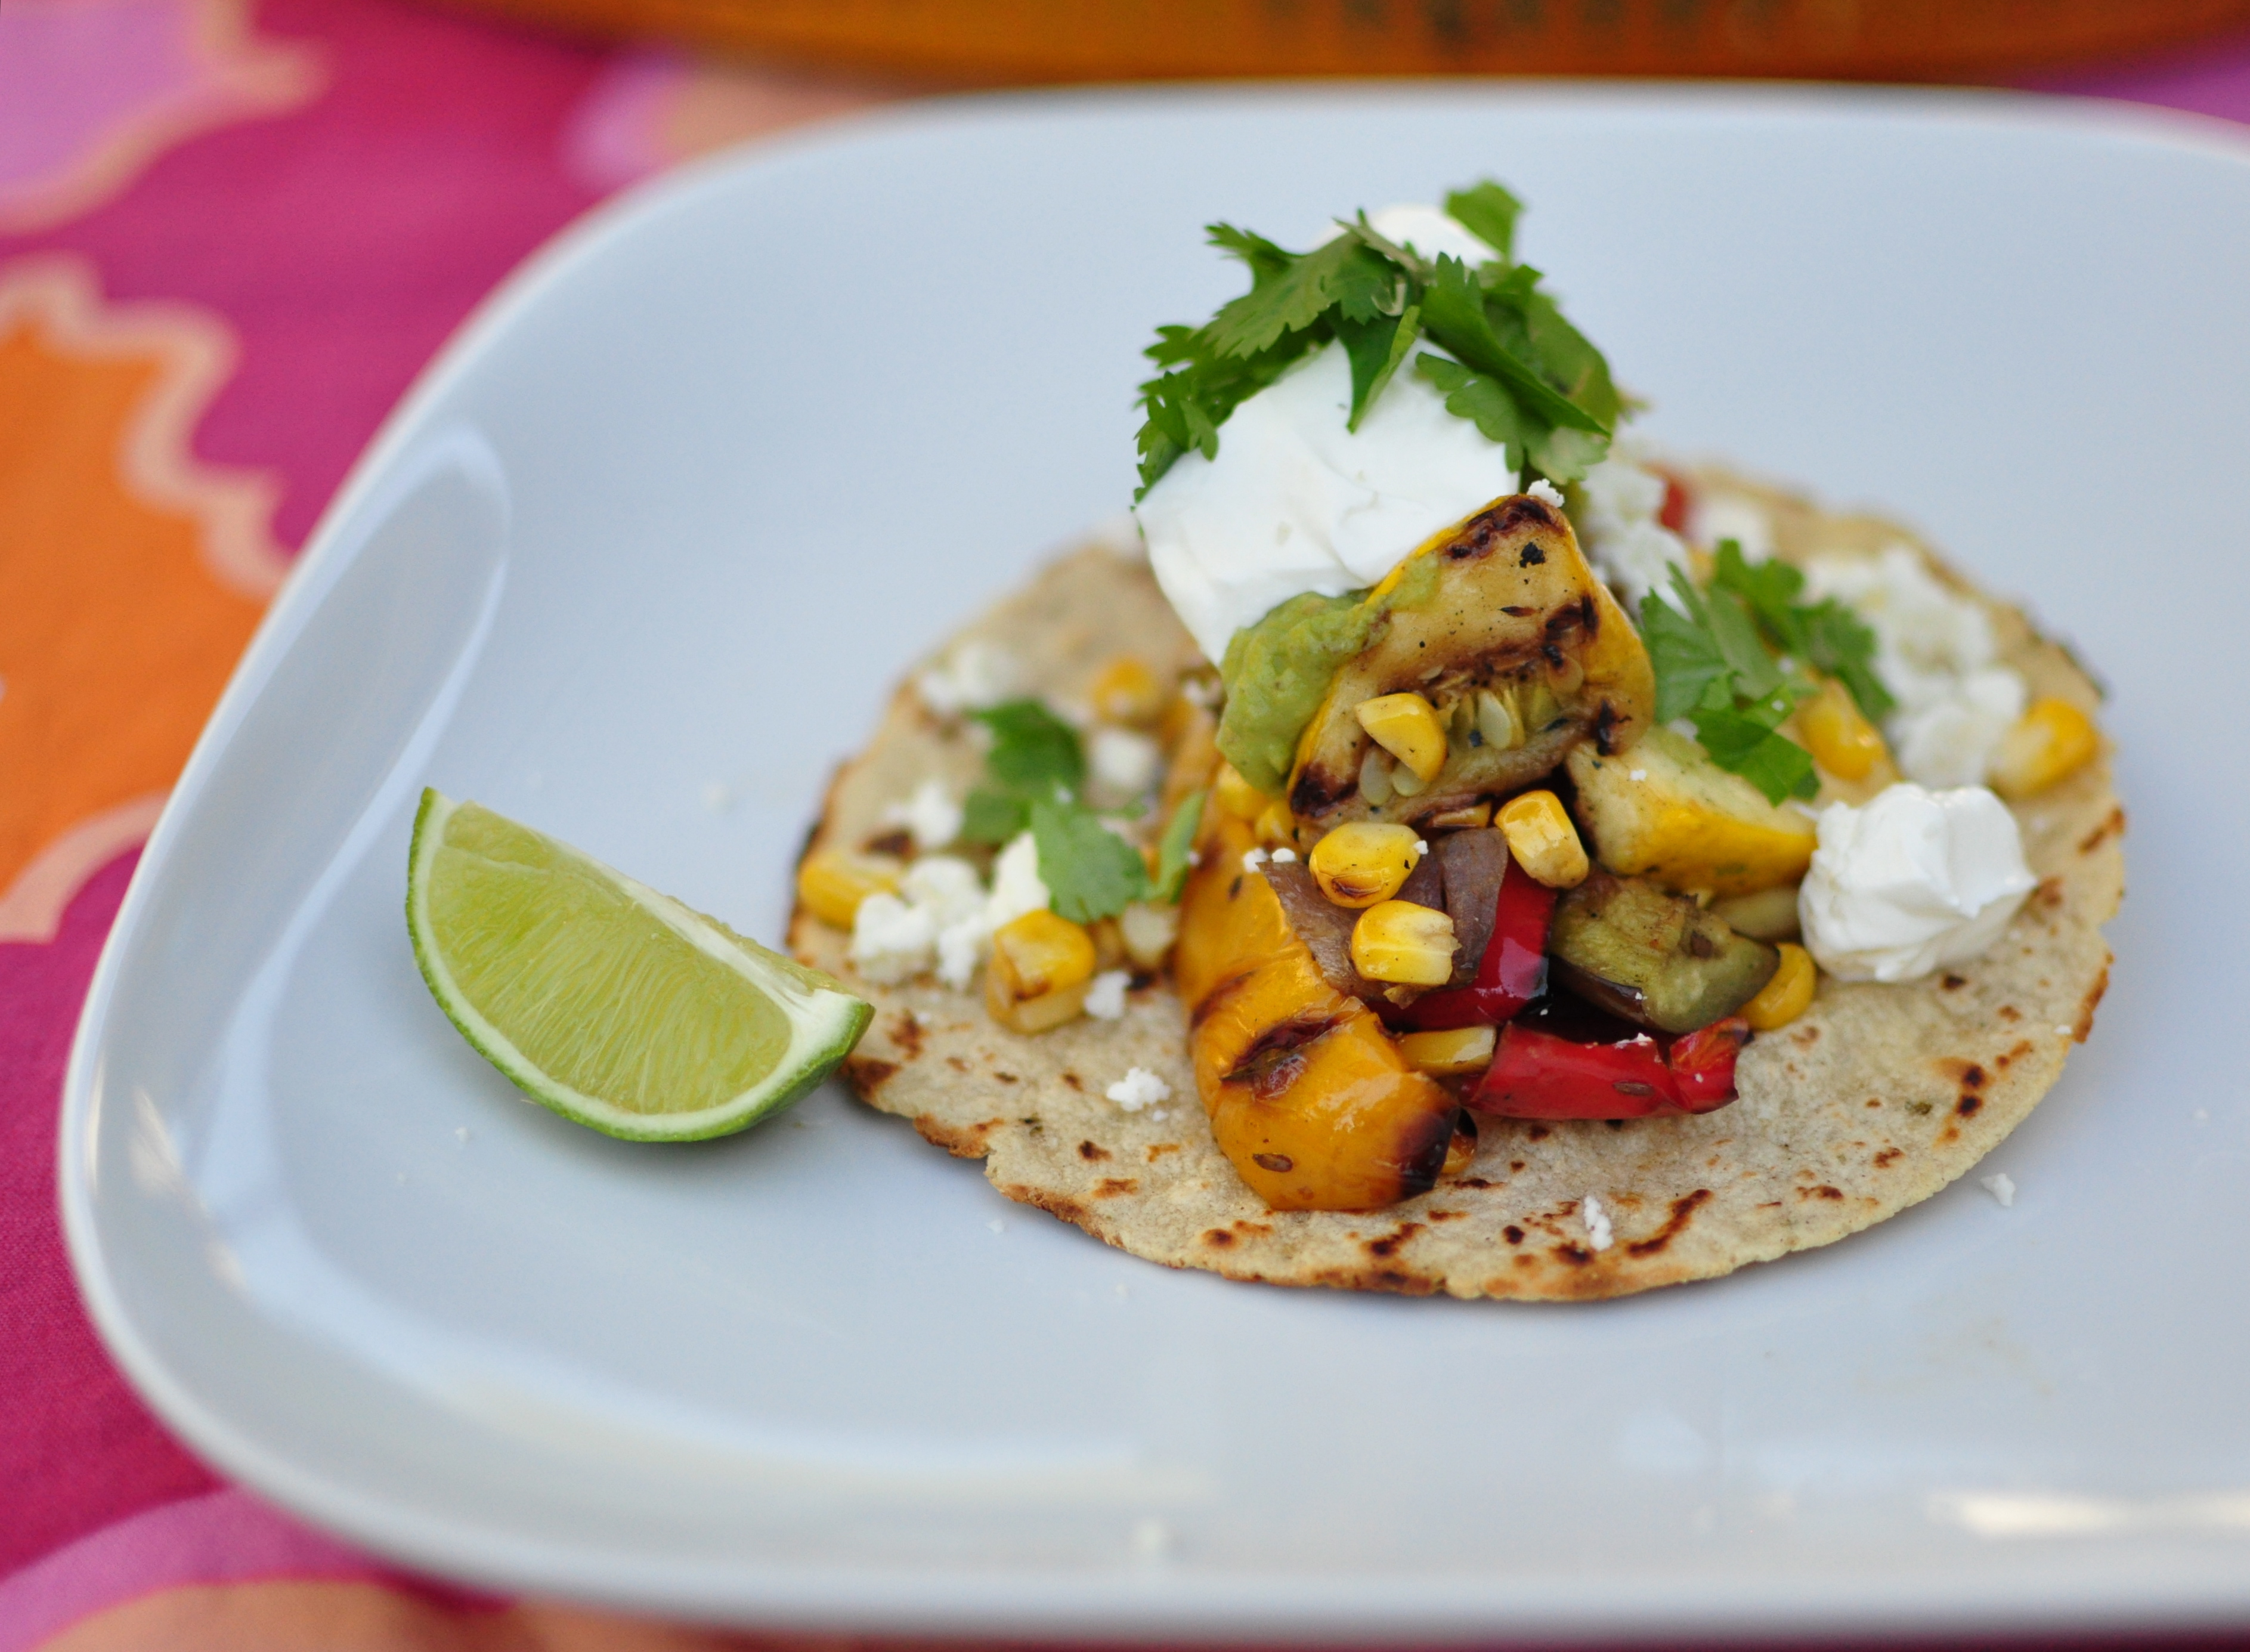 Grilled Vegetarian Tacos With Barbecued Guacamole | POPSUGAR Food